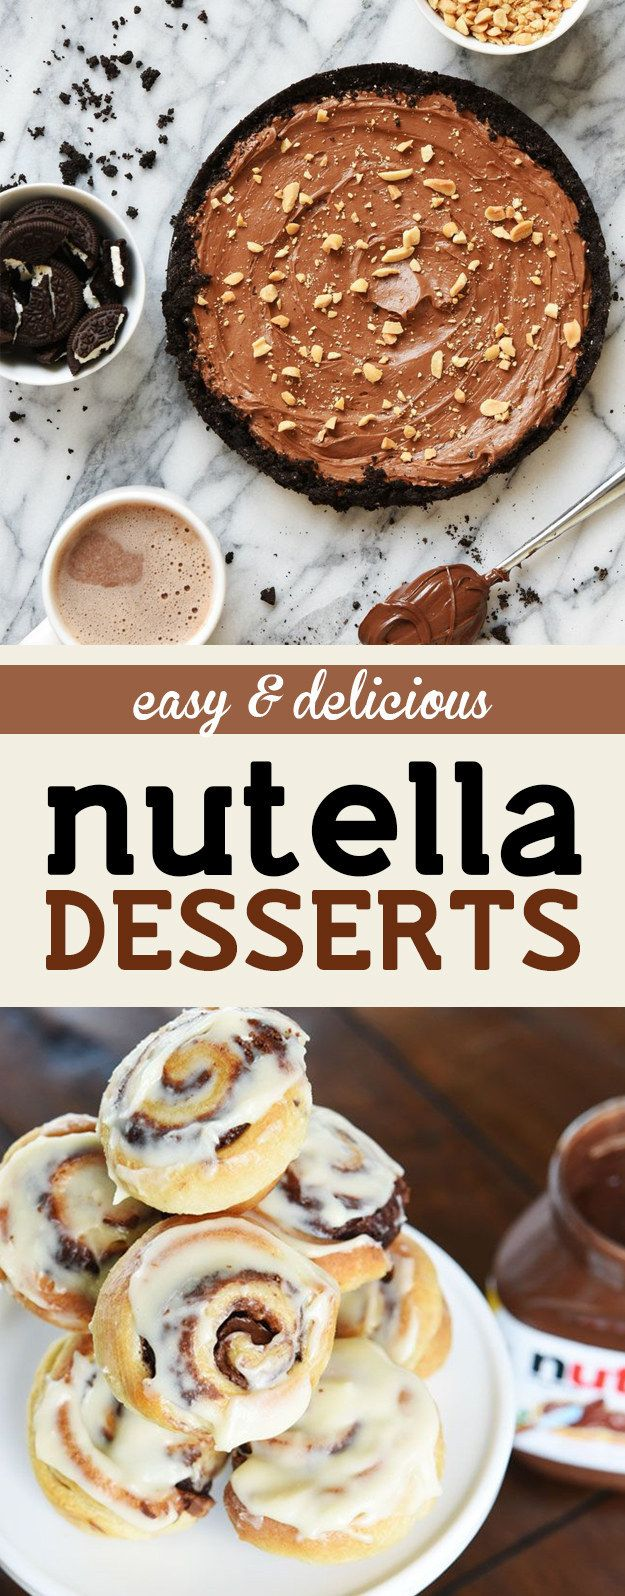 These Super Easy Nutella Desserts Are A Total Gamechanger